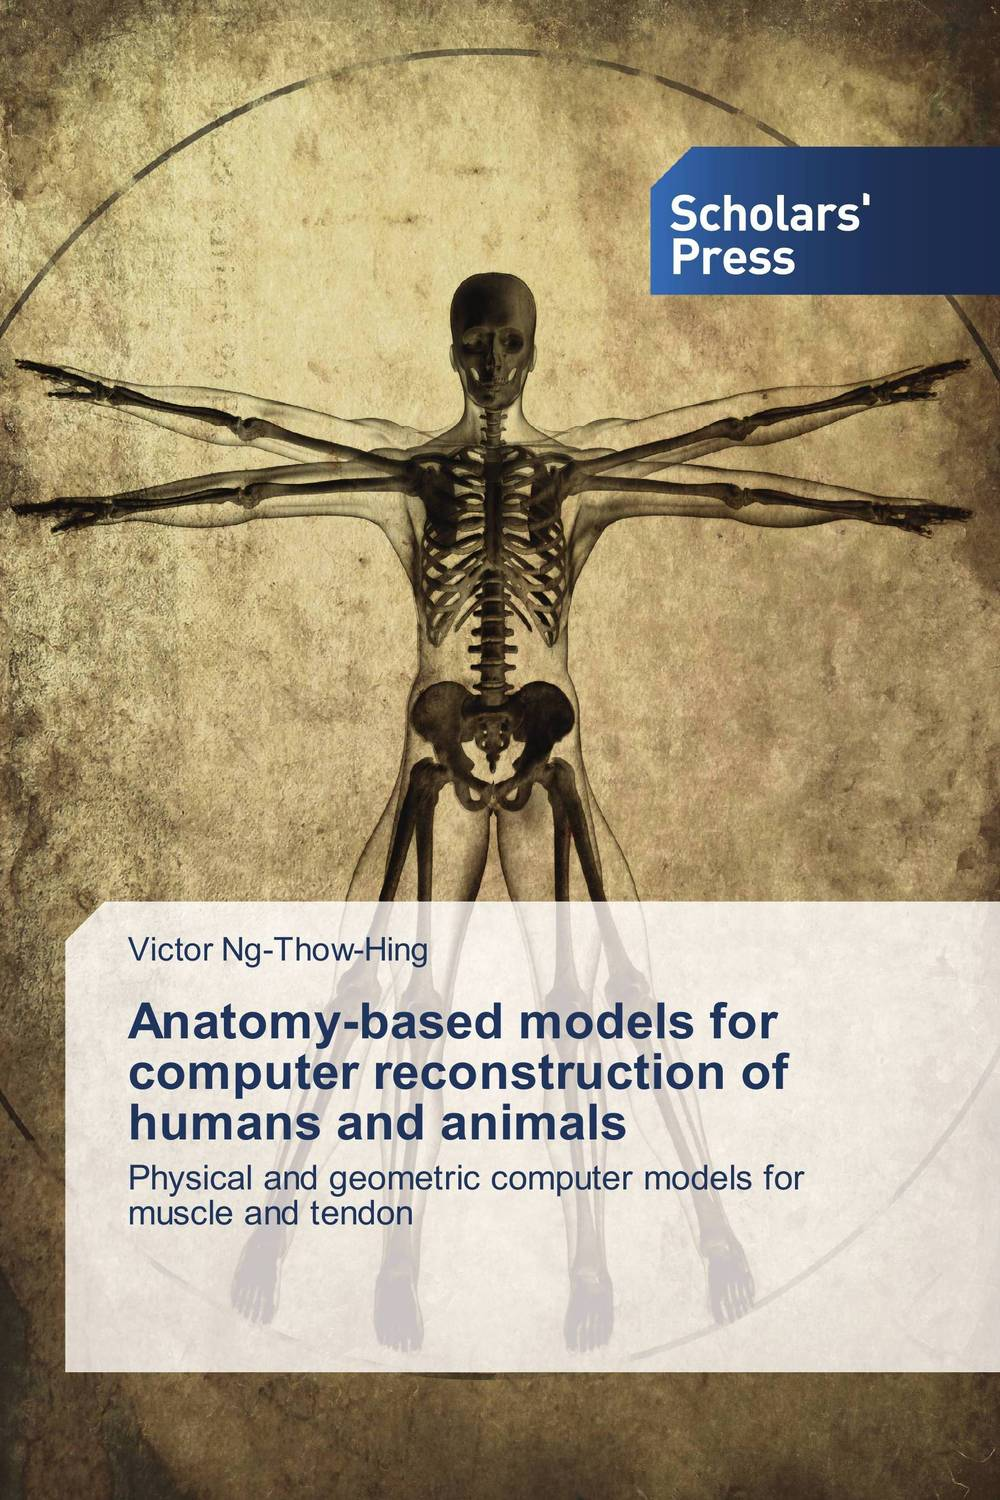 Anatomy-based models for computer reconstruction of humans and animals anatomy based models for computer reconstruction of humans and animals